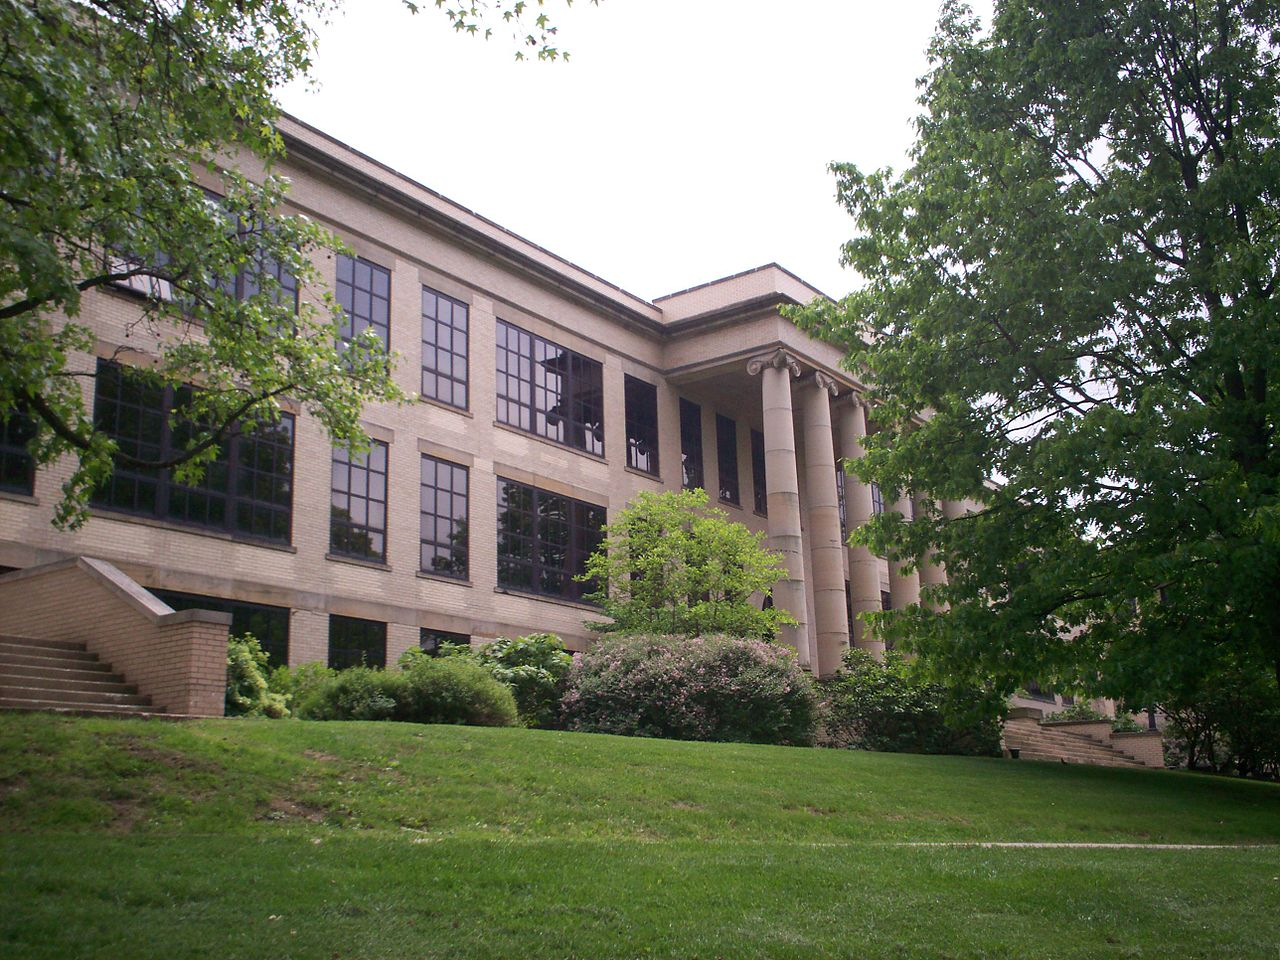 Merrill Hall today